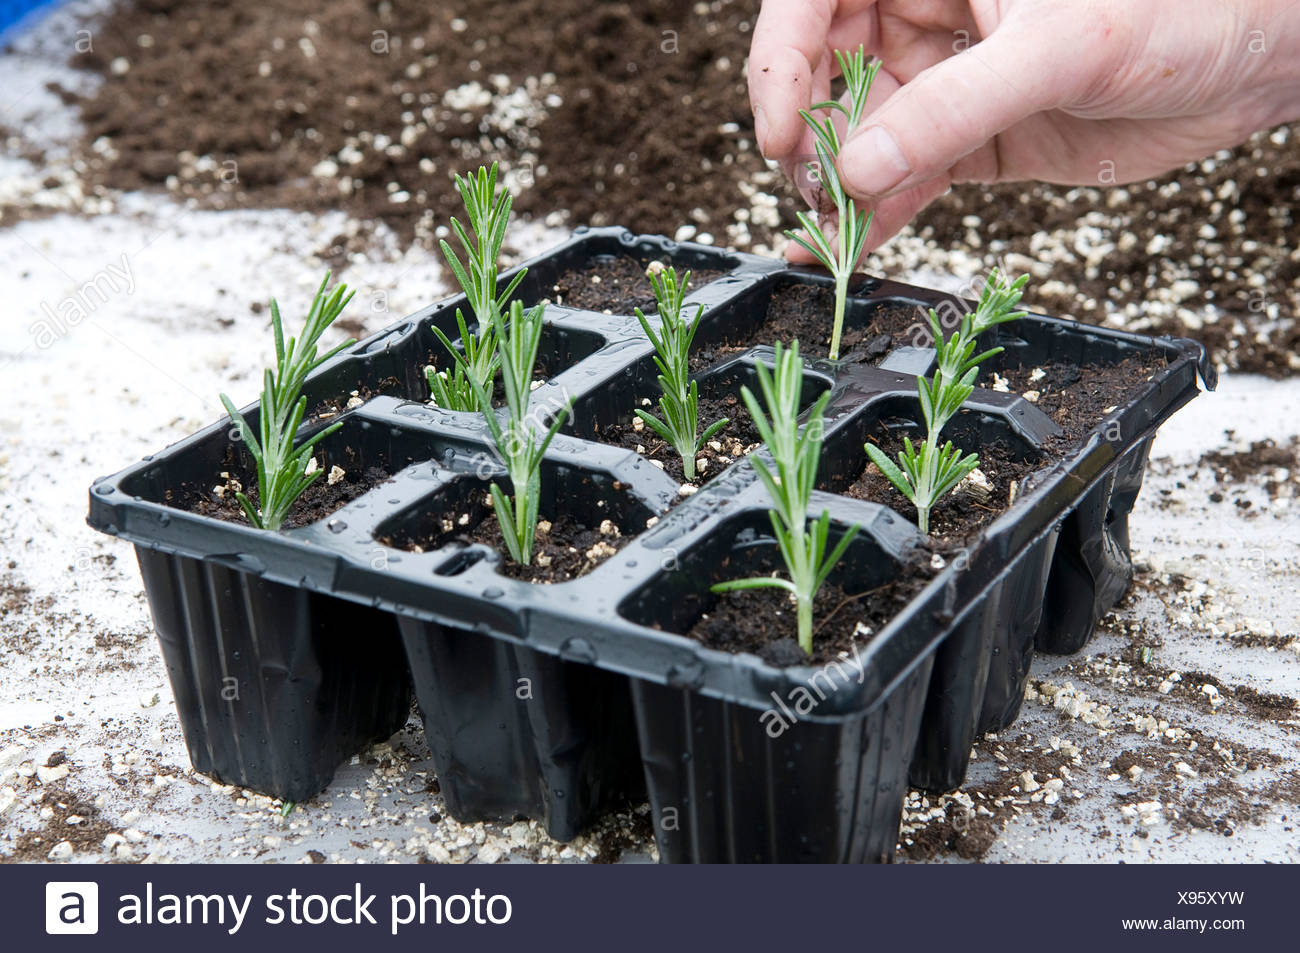 Inserting rosemary cuttings in seedling tray - Stock Image